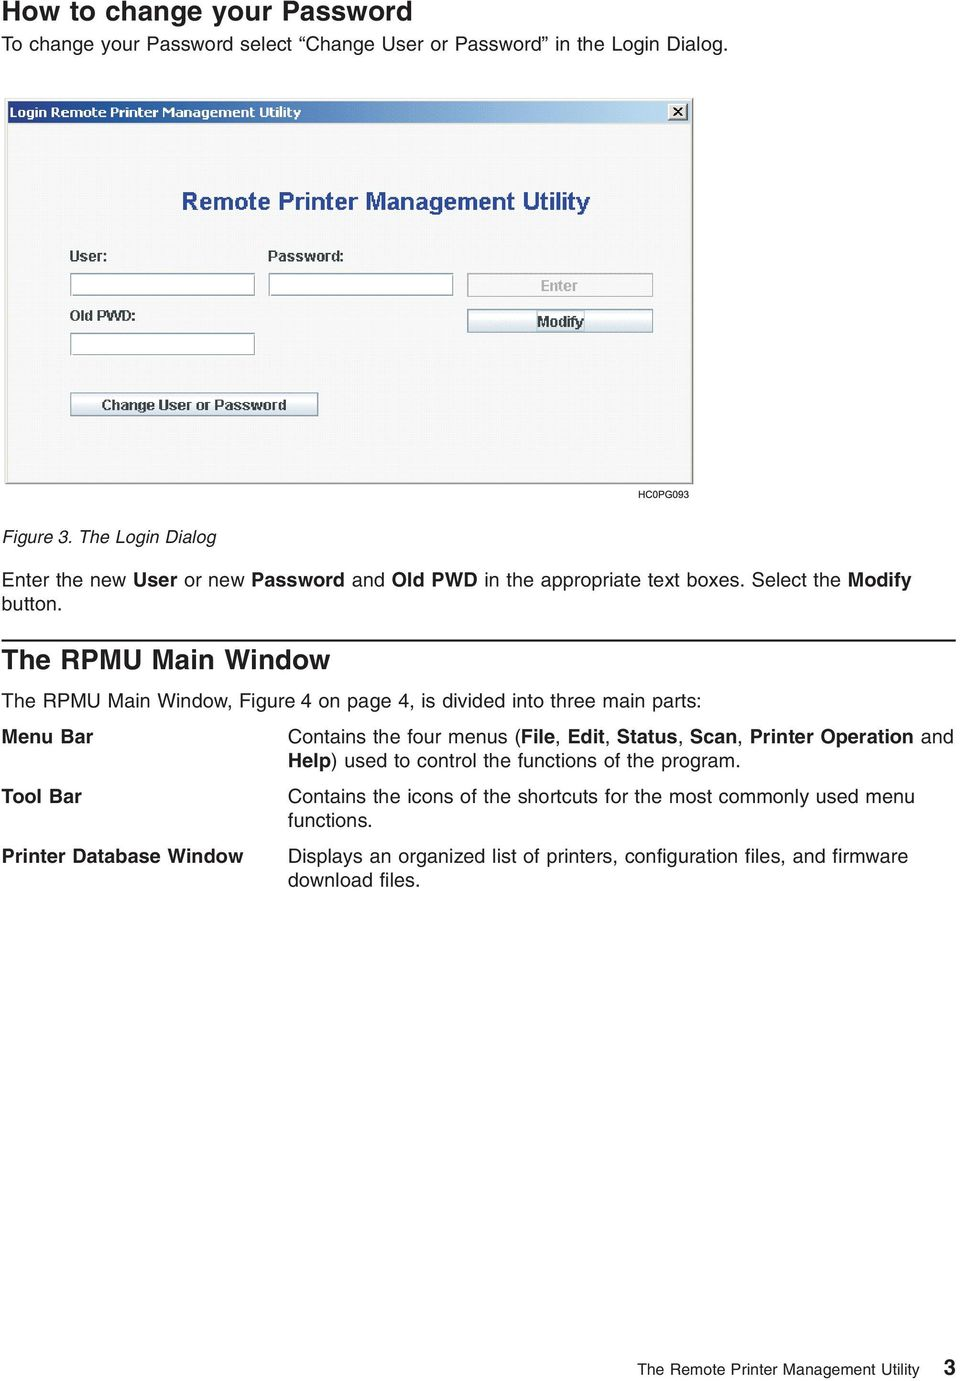 The RPMU Main Window The RPMU Main Window, Figure 4 on page 4, is divided into three main parts: Menu Bar Contains the four menus (File, Edit, Status, Scan, Printer Operation